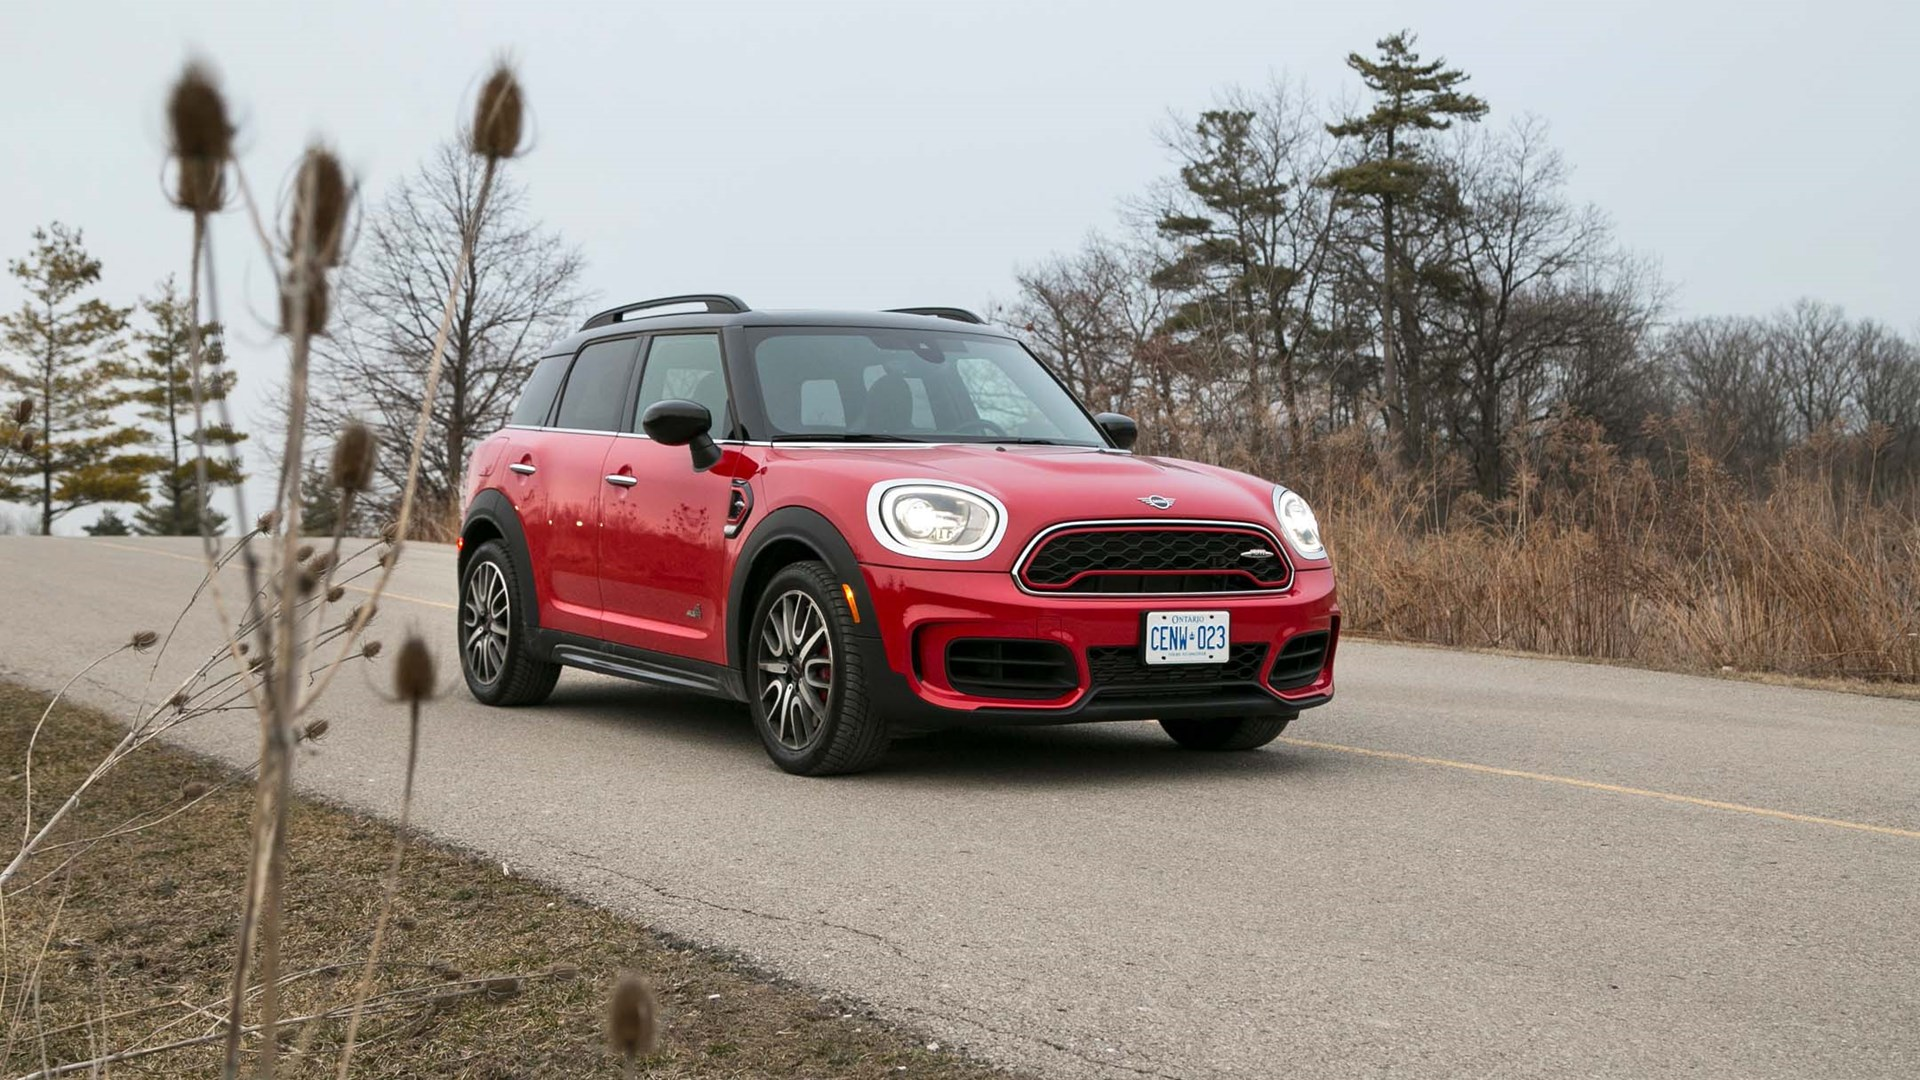 20 Mini John Cooper Works Countryman All20 Canadian Review ...